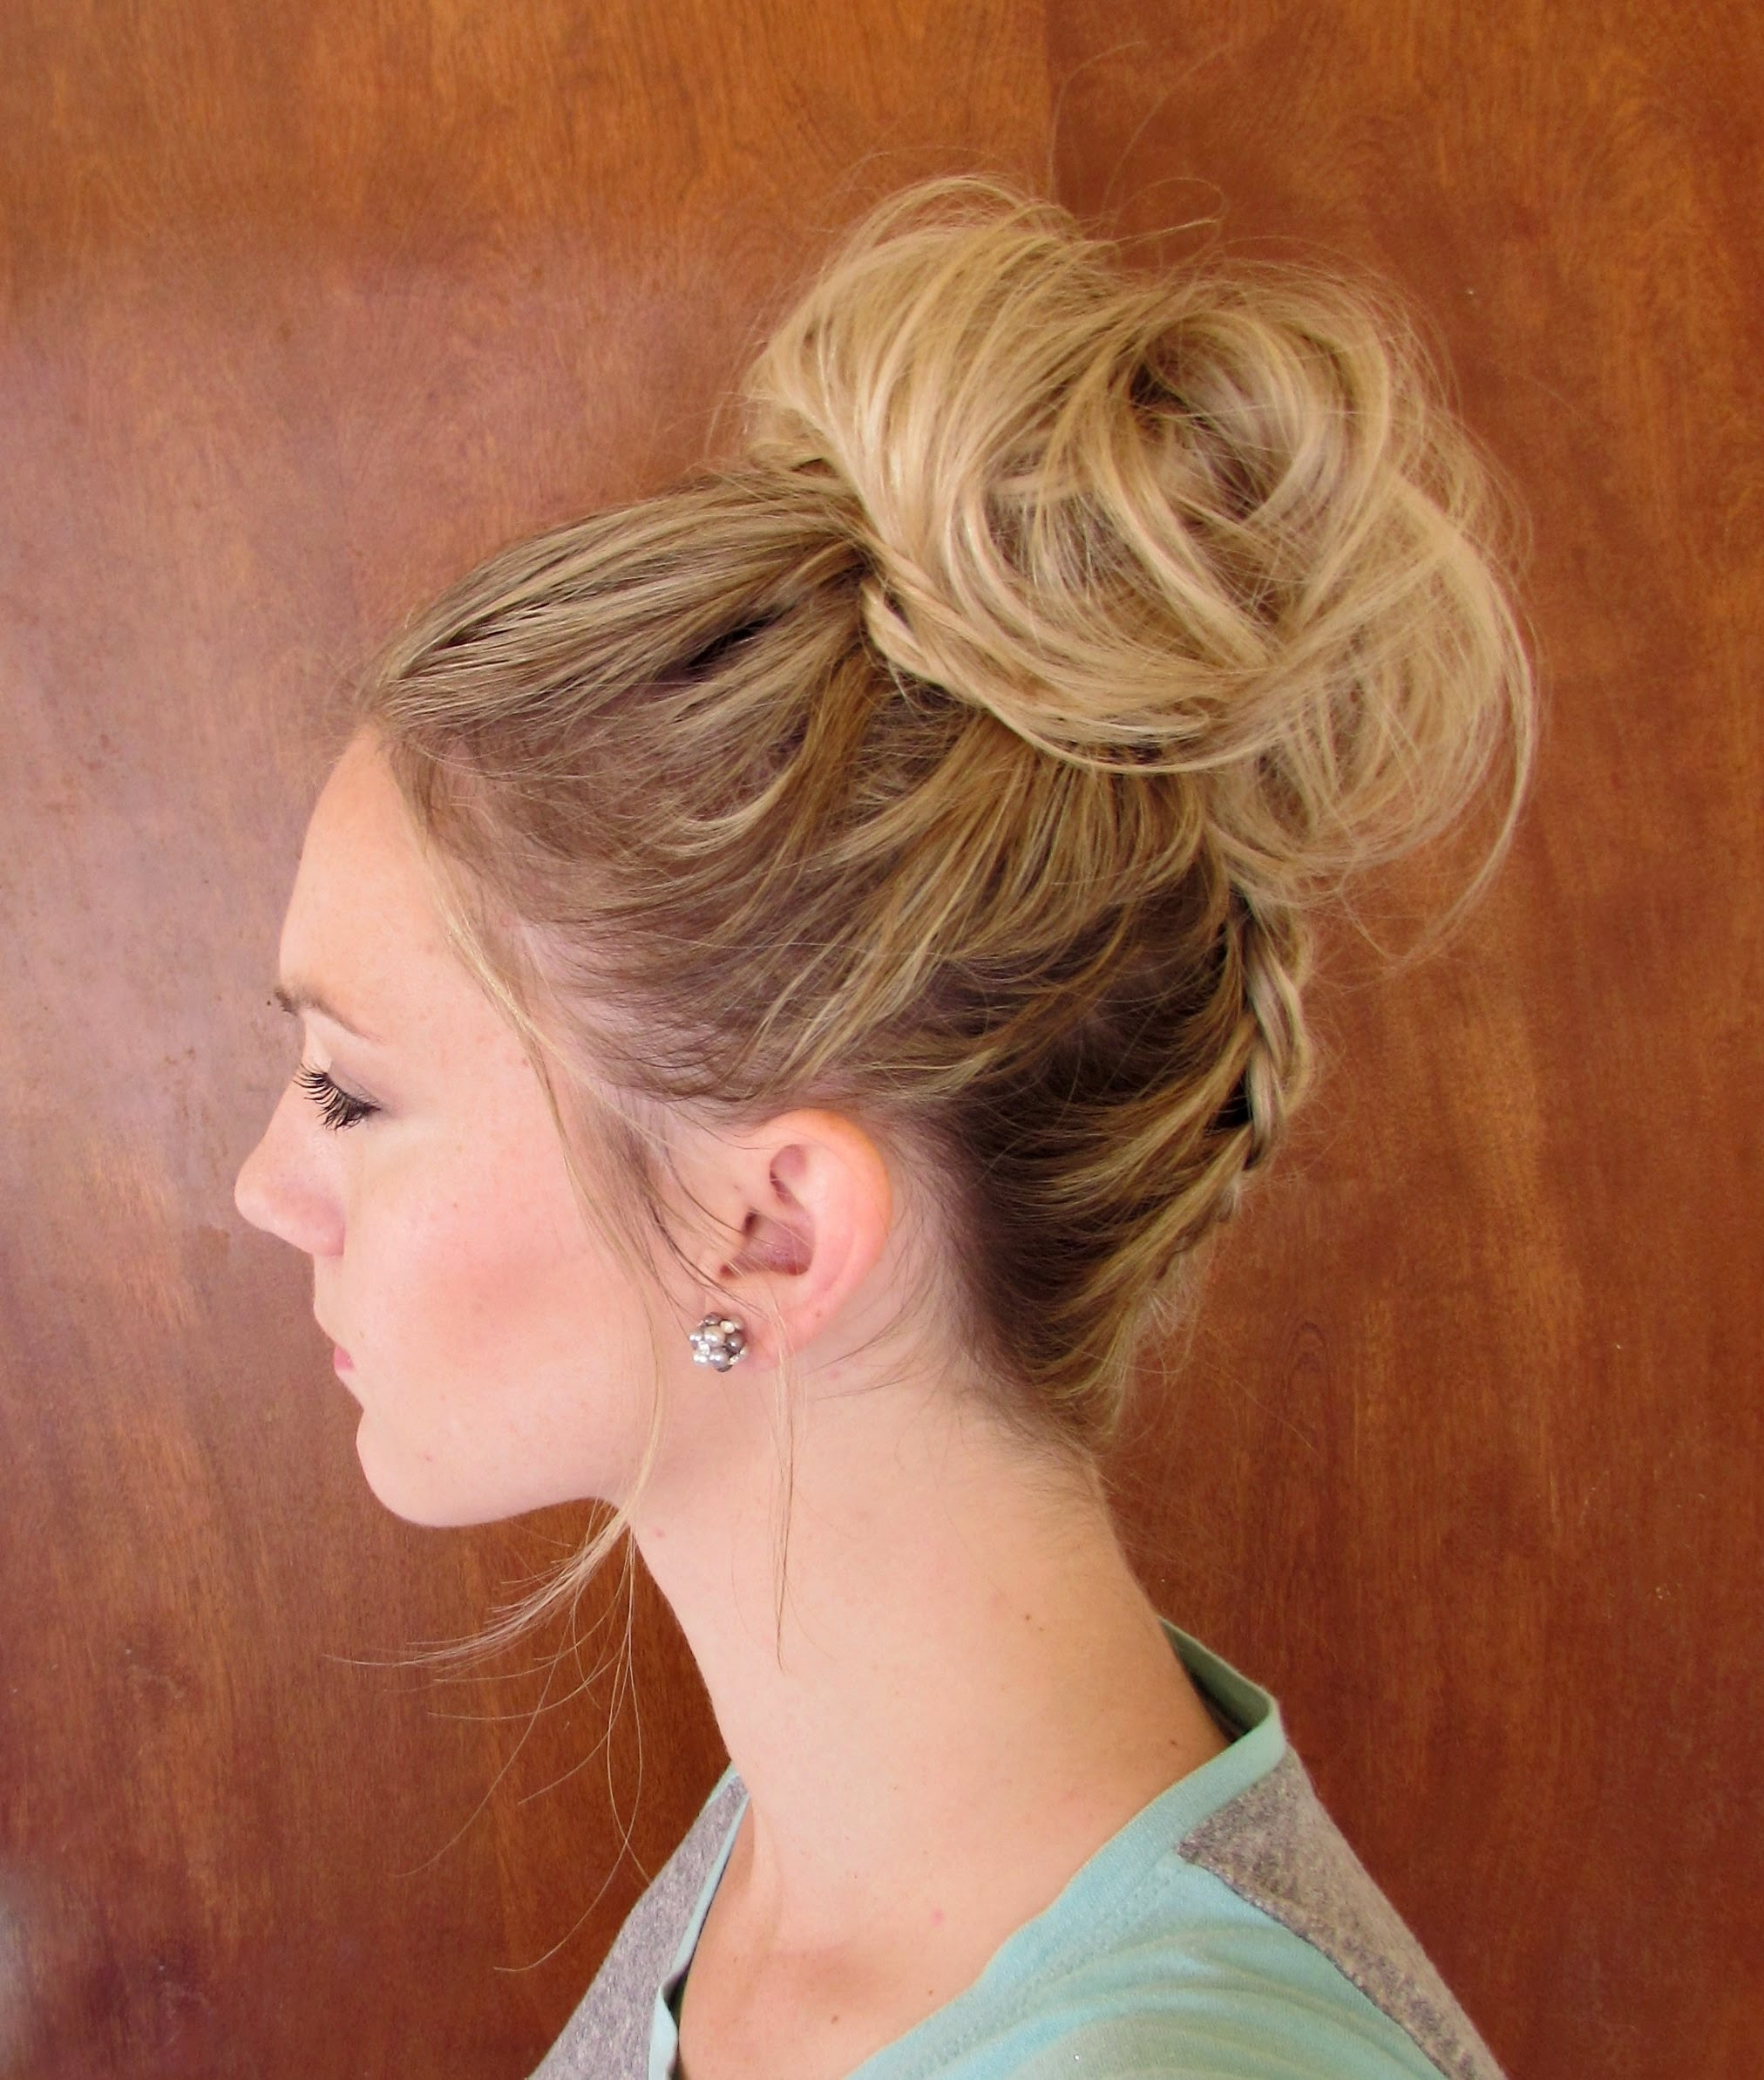 Best And Newest Upside Down Braids Into Messy Bun With How To: Upside Down Dutch Braid Into A Messy Bun – Youtube (View 2 of 15)